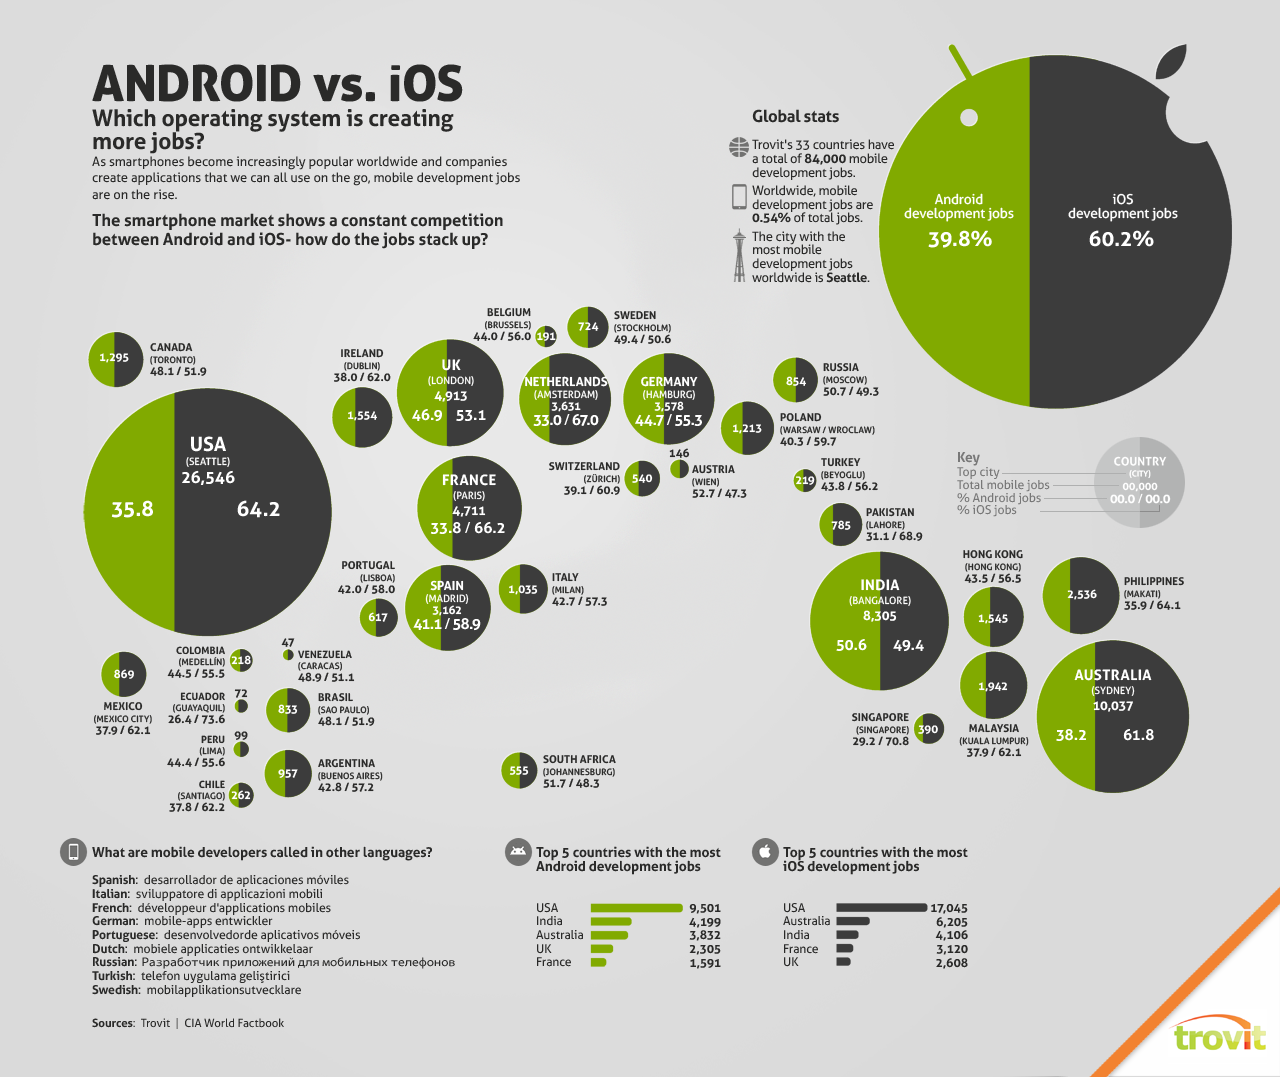 Android vs iOS Jobs